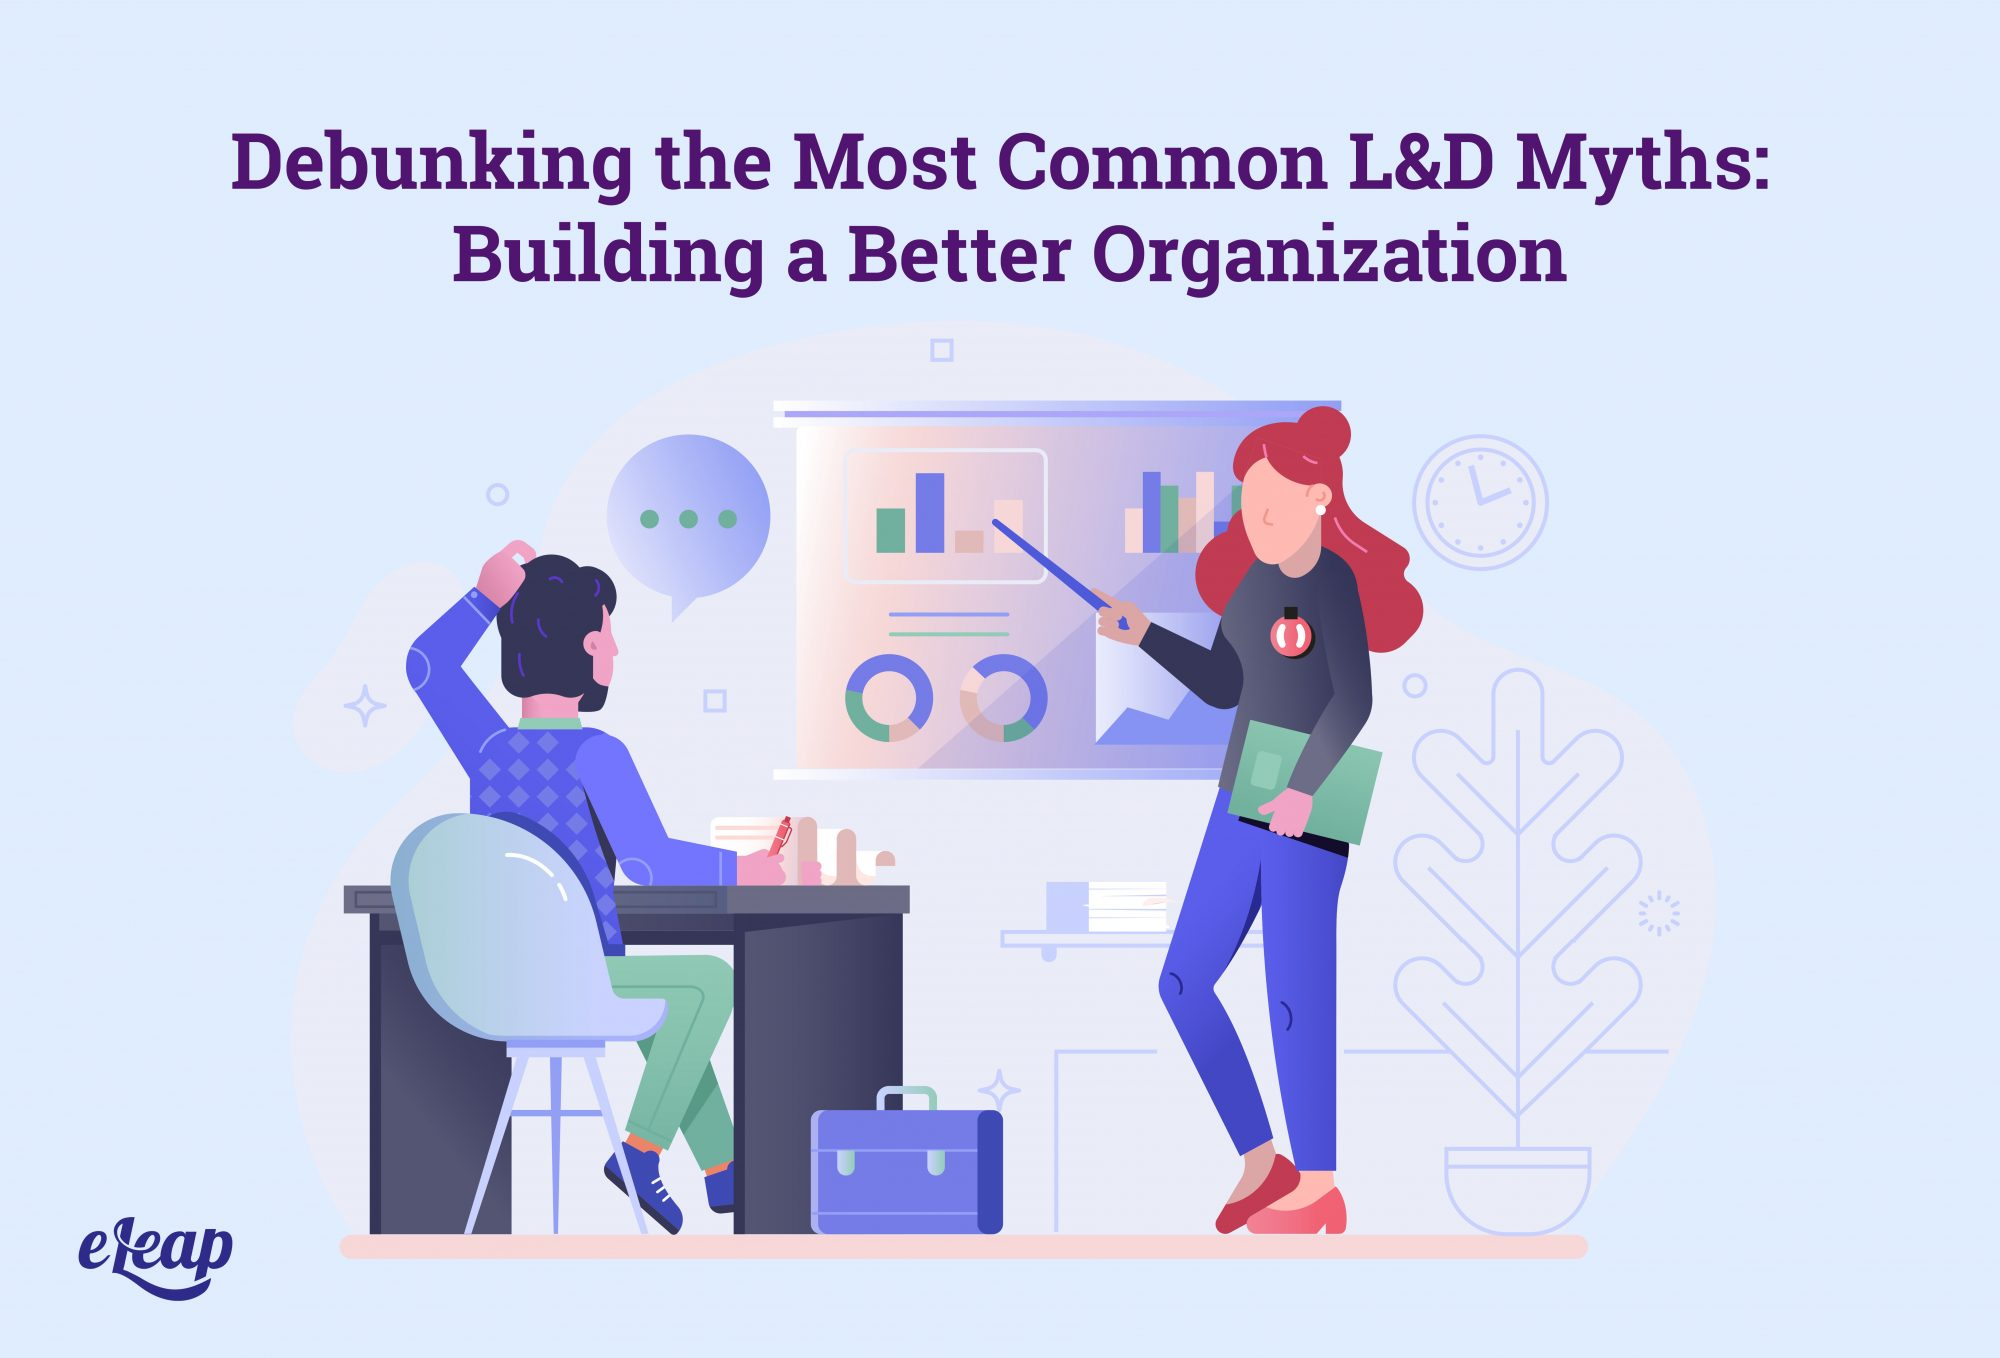 Debunking the Most Common L&D Myths: Building a Better Organization